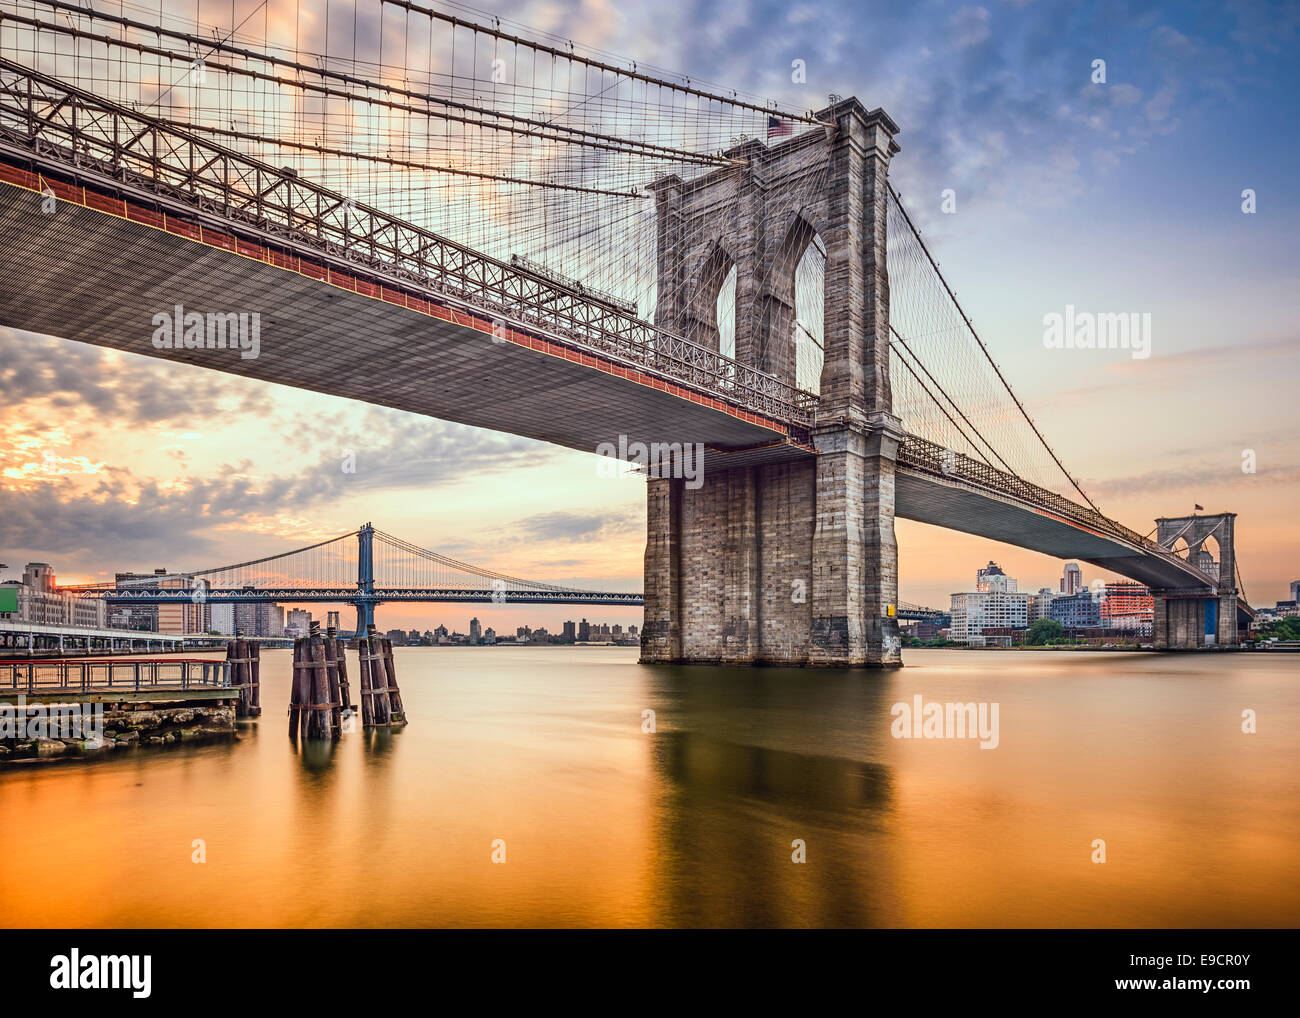 Brooklyn Bridge in New York City, USA at dawn. - Stock Image